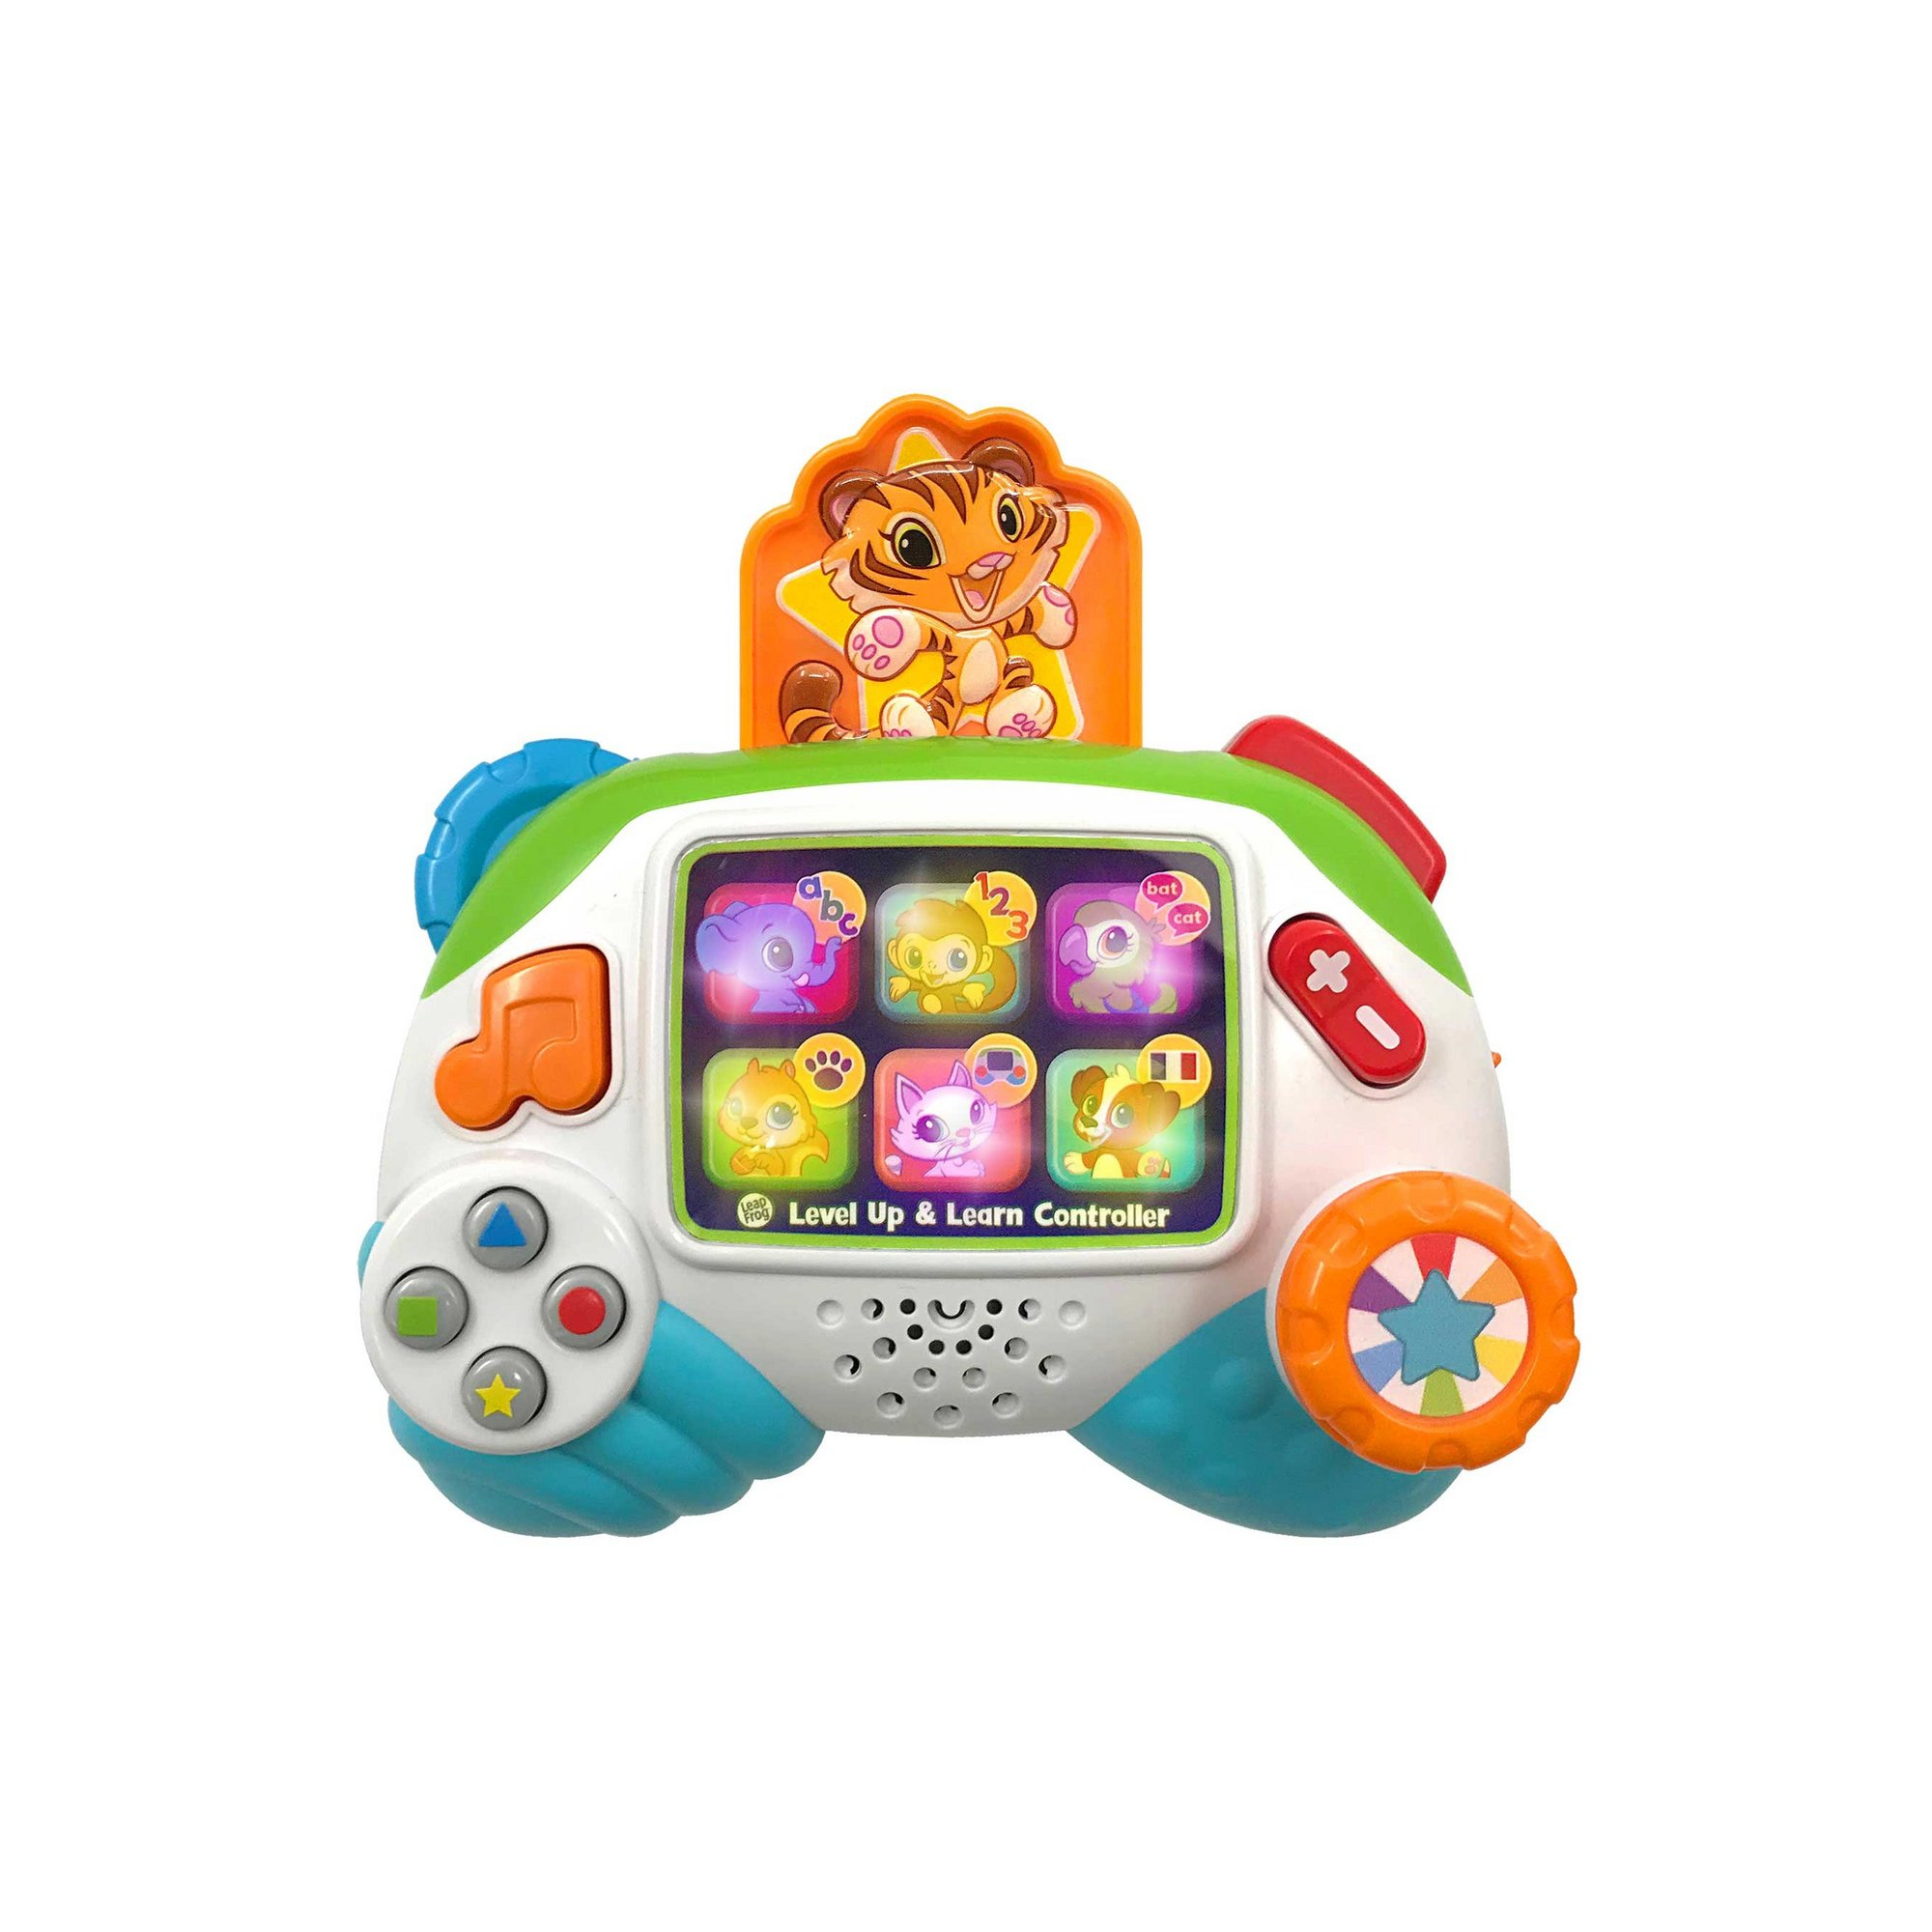 Image of Leapfrog Level Up and Learn Controller